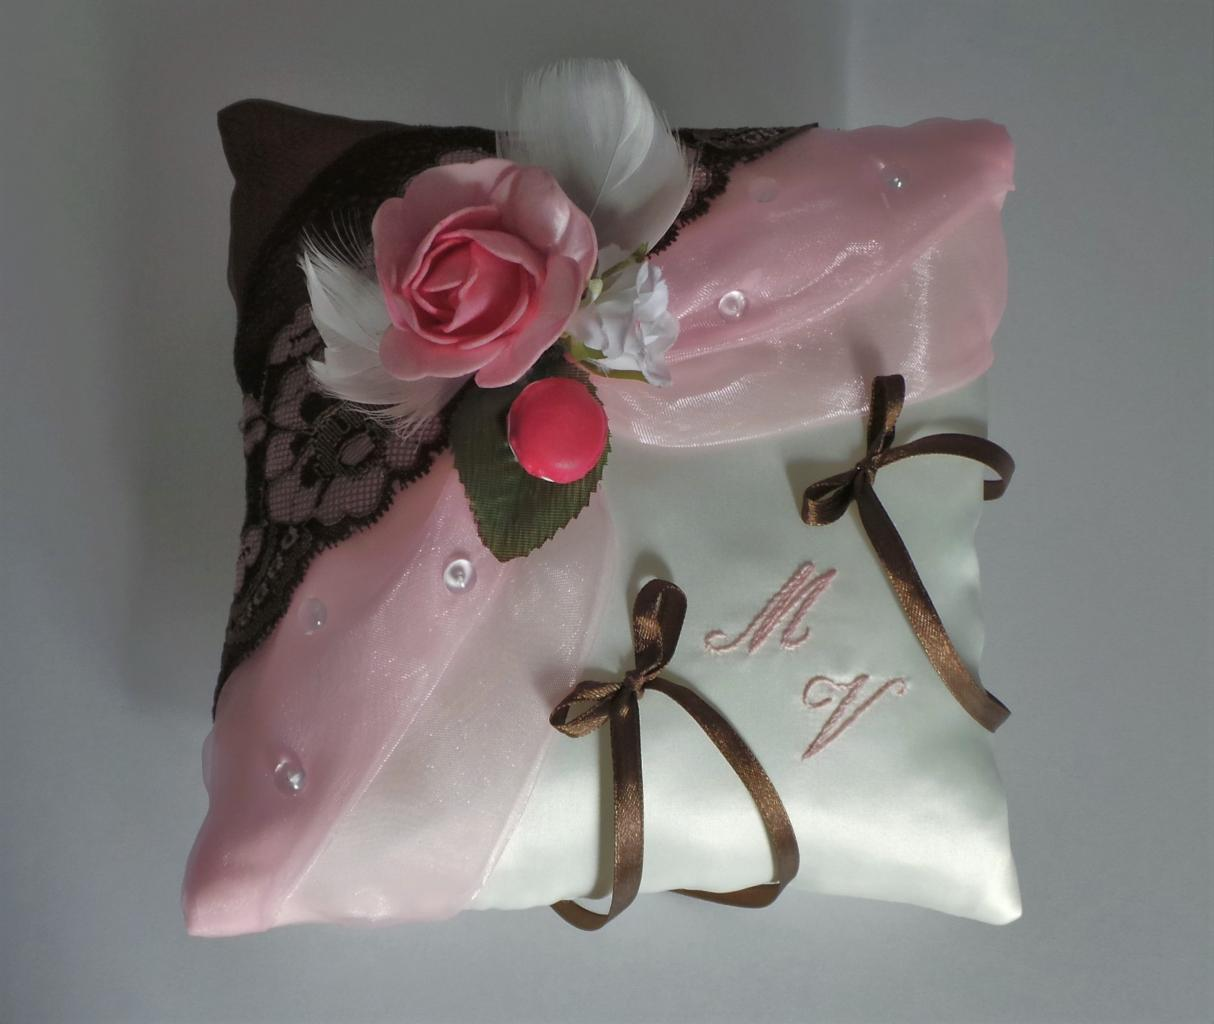 Coussin alliances chocolat rose